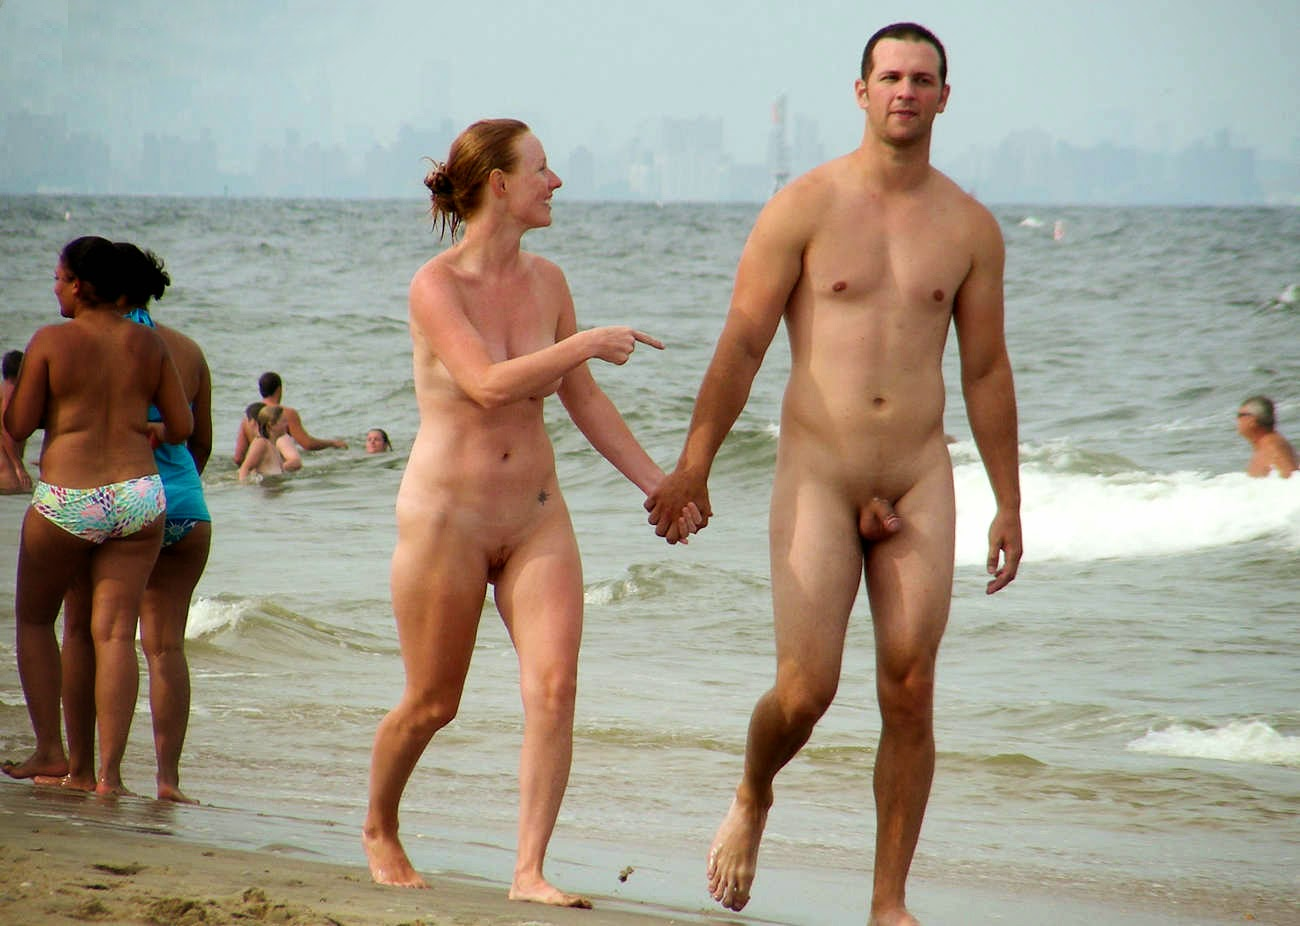 photos of nude couples in beach